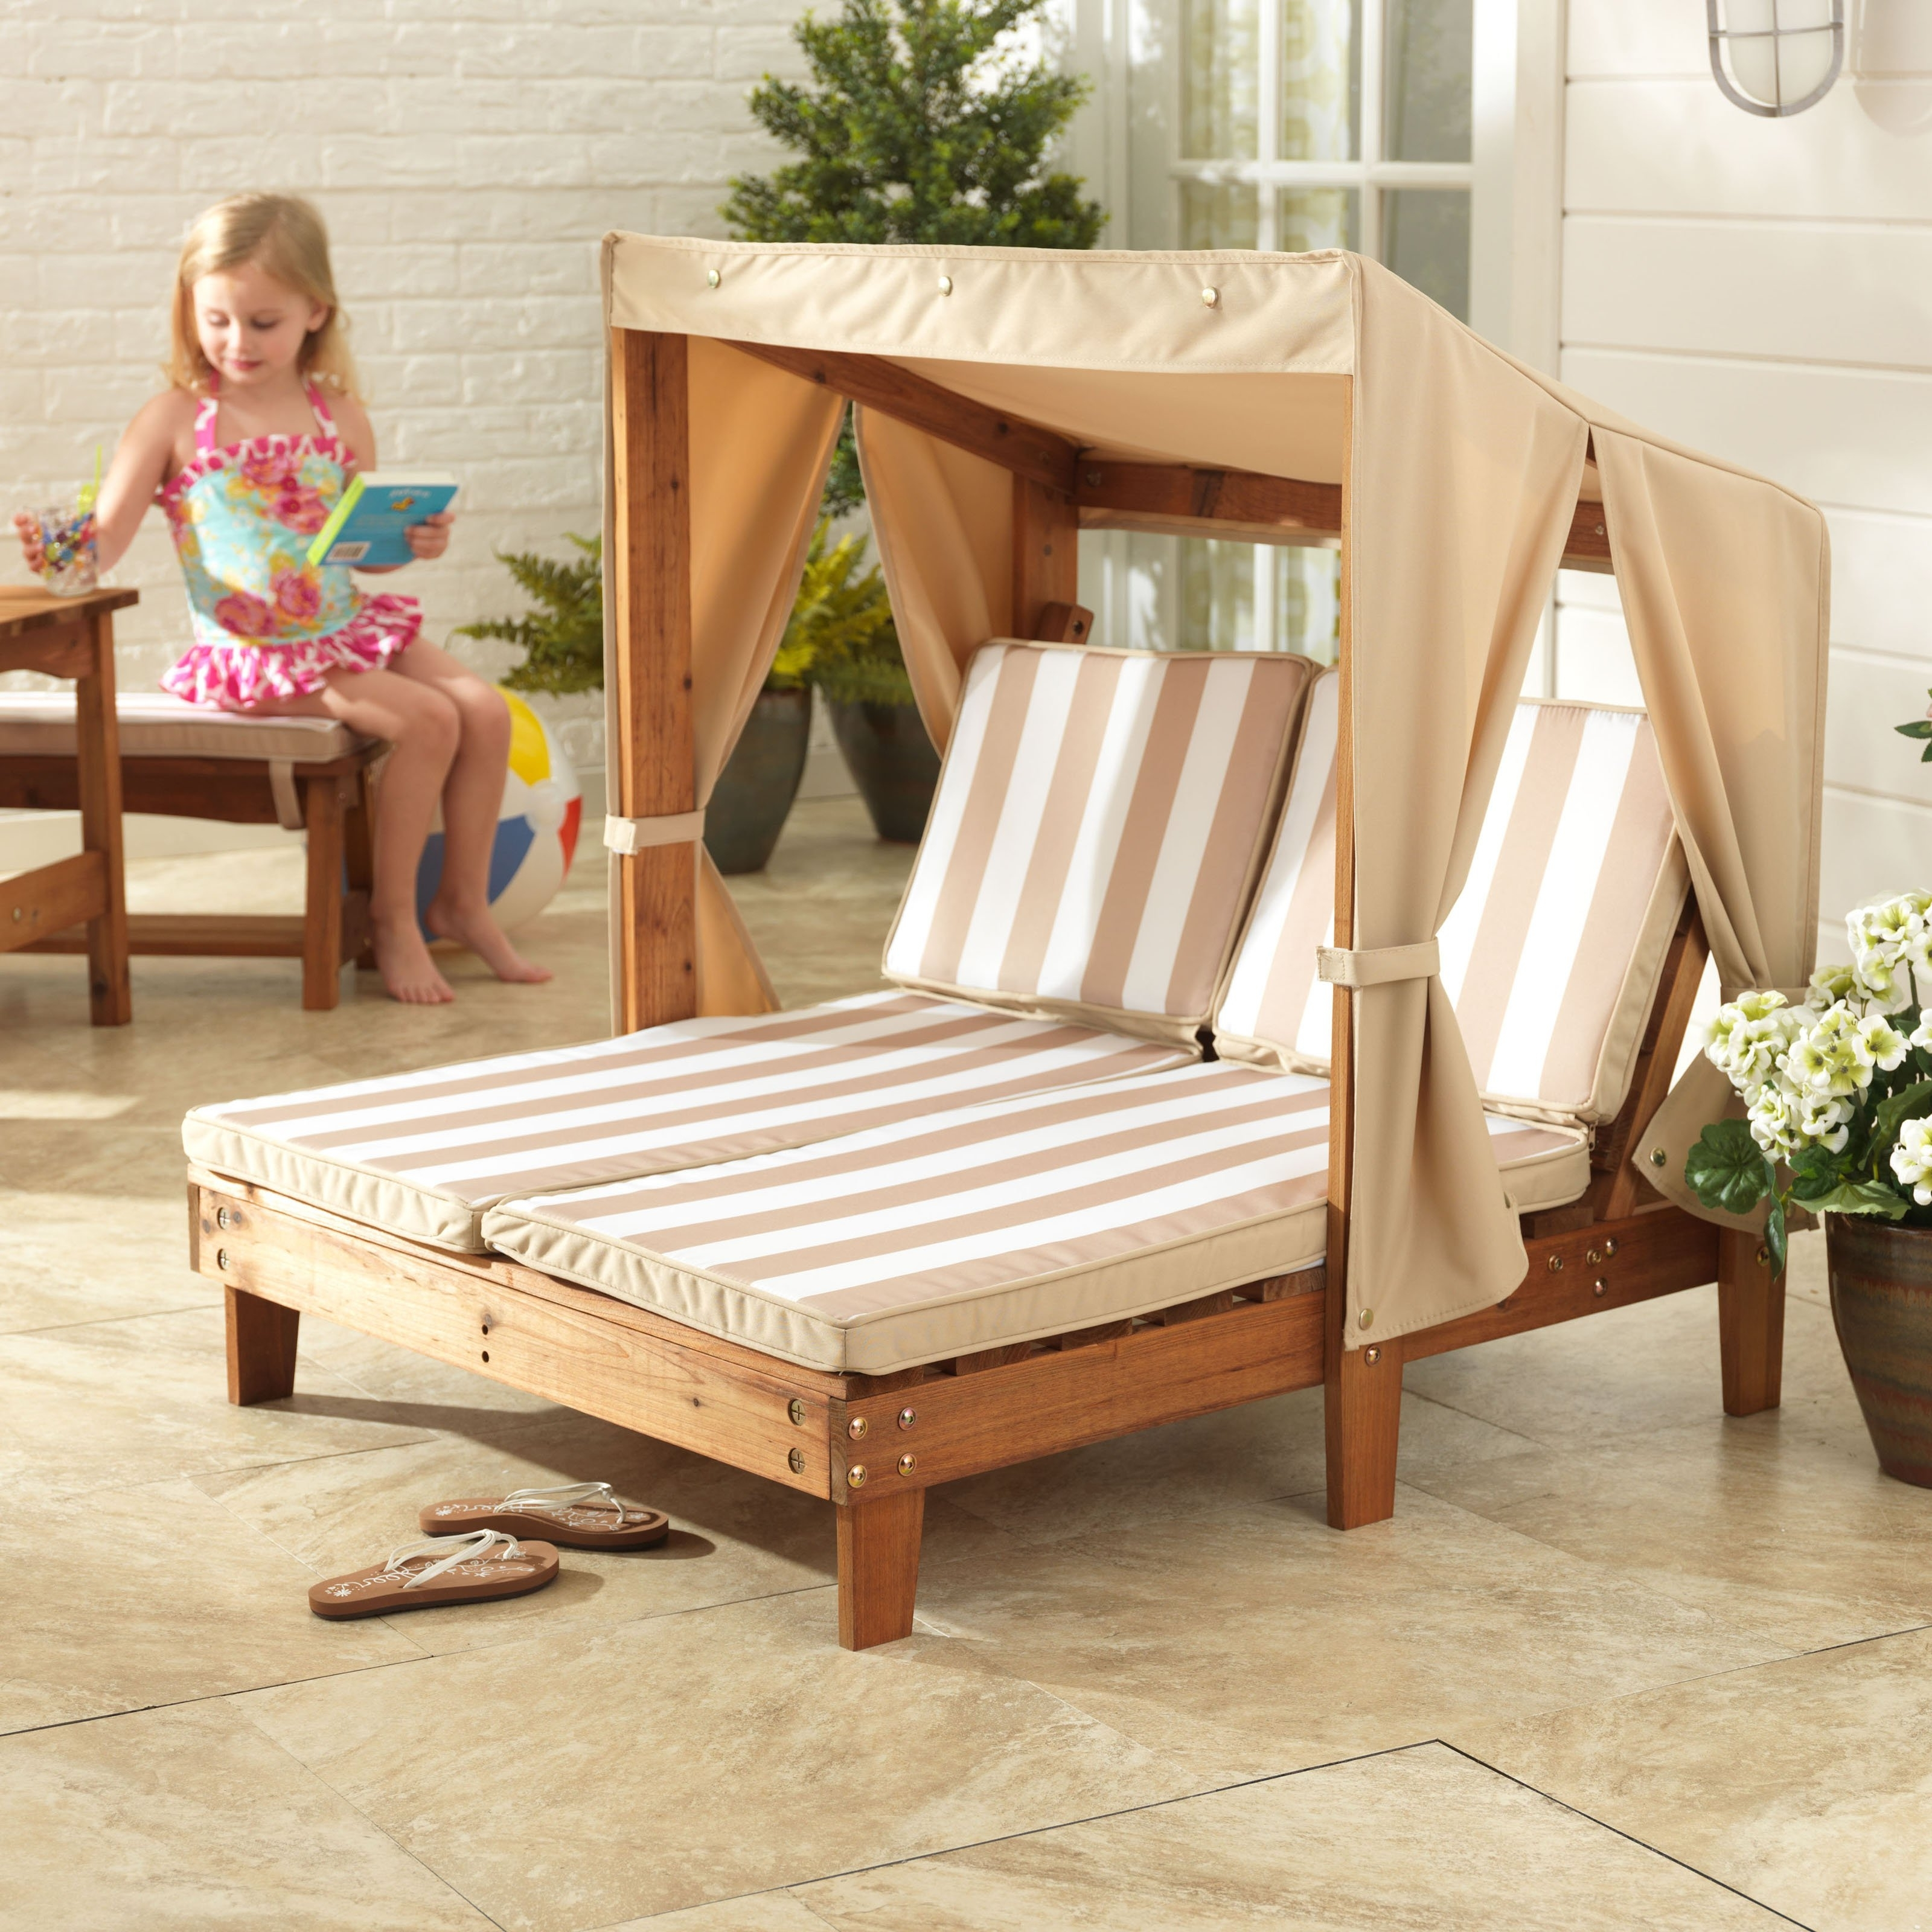 Kidkraft Chaise Lounges For Popular Kidkraft Double Chaise Chair – 502 – Walmart (View 5 of 15)